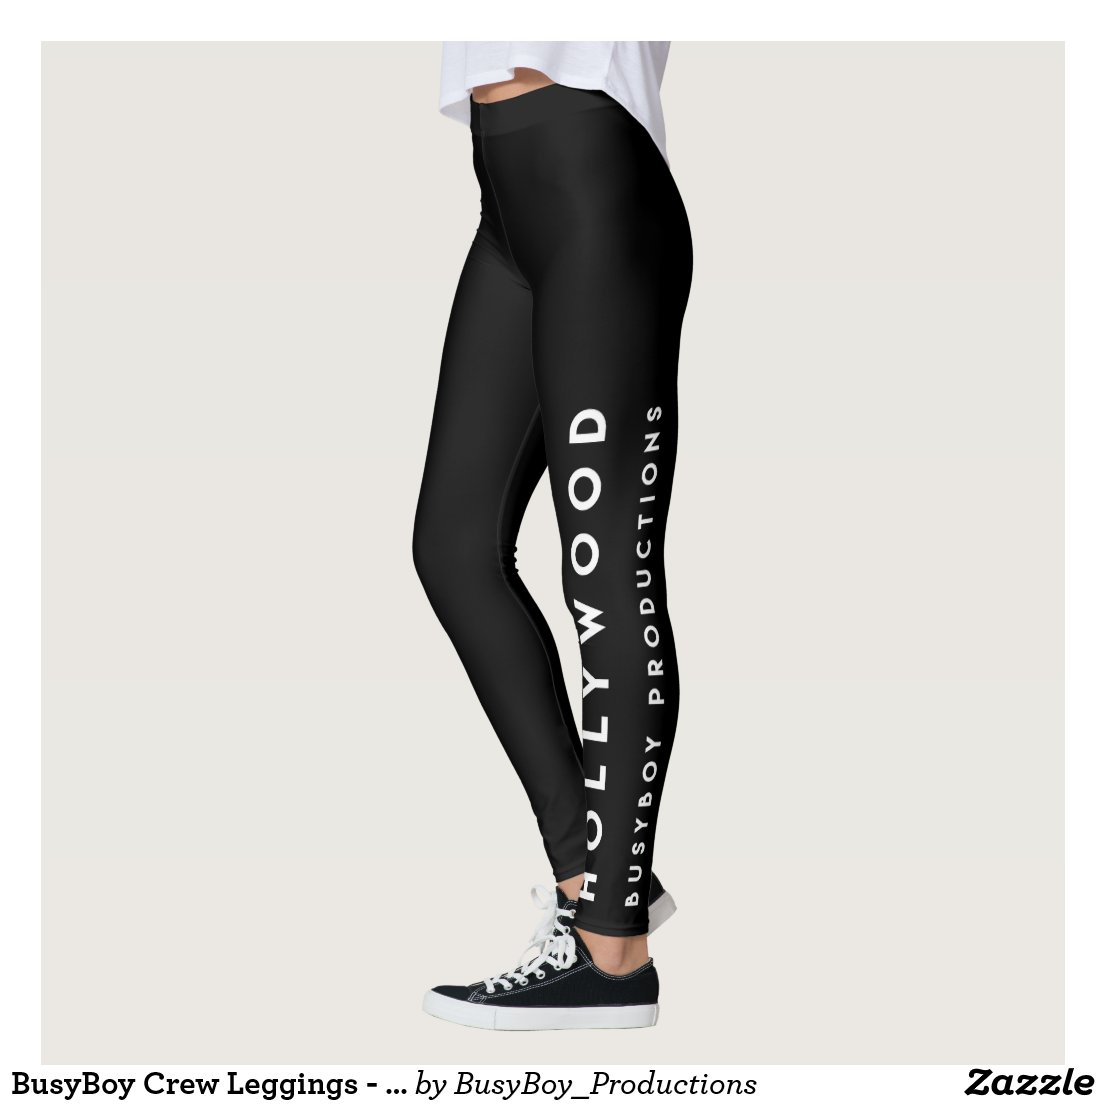 BusyBoy Crew Leggings - Hollywood Black